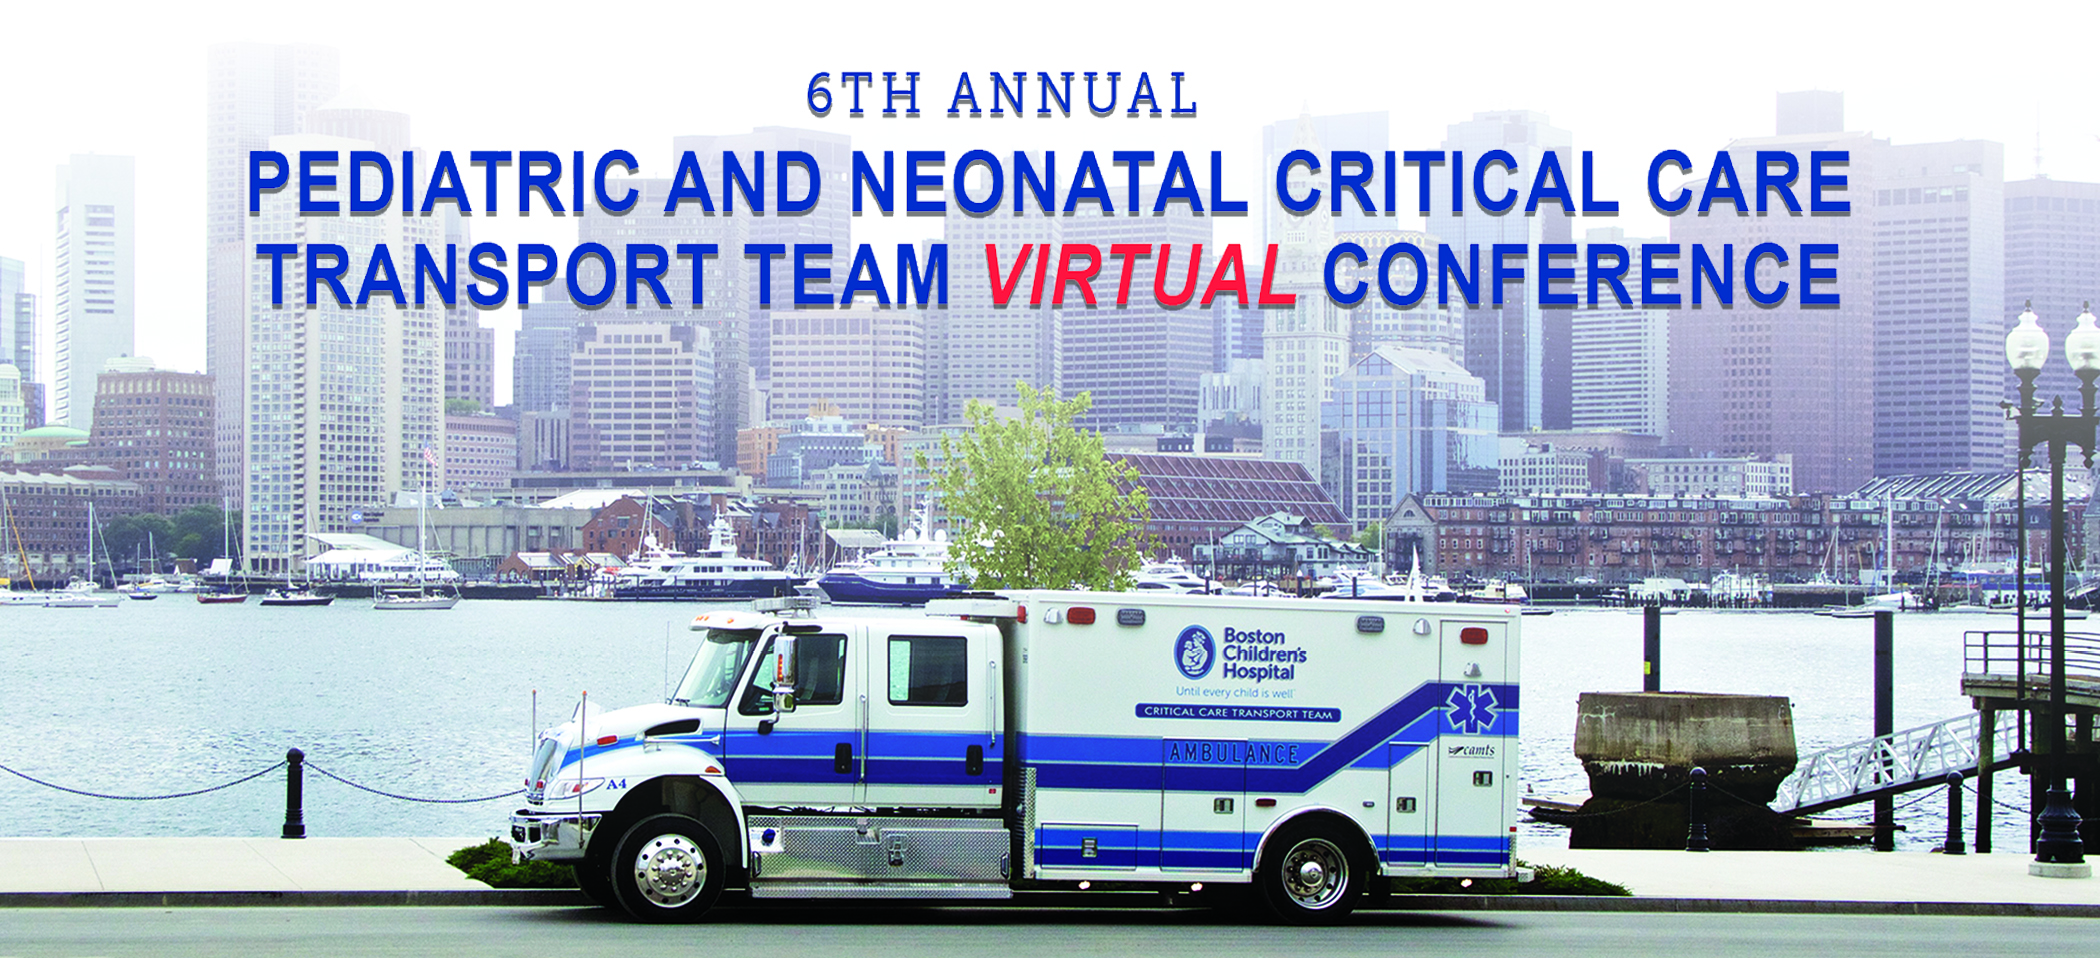 6th Annual Pediatric and Neonatal Critical Care Transport Team Conference Banner